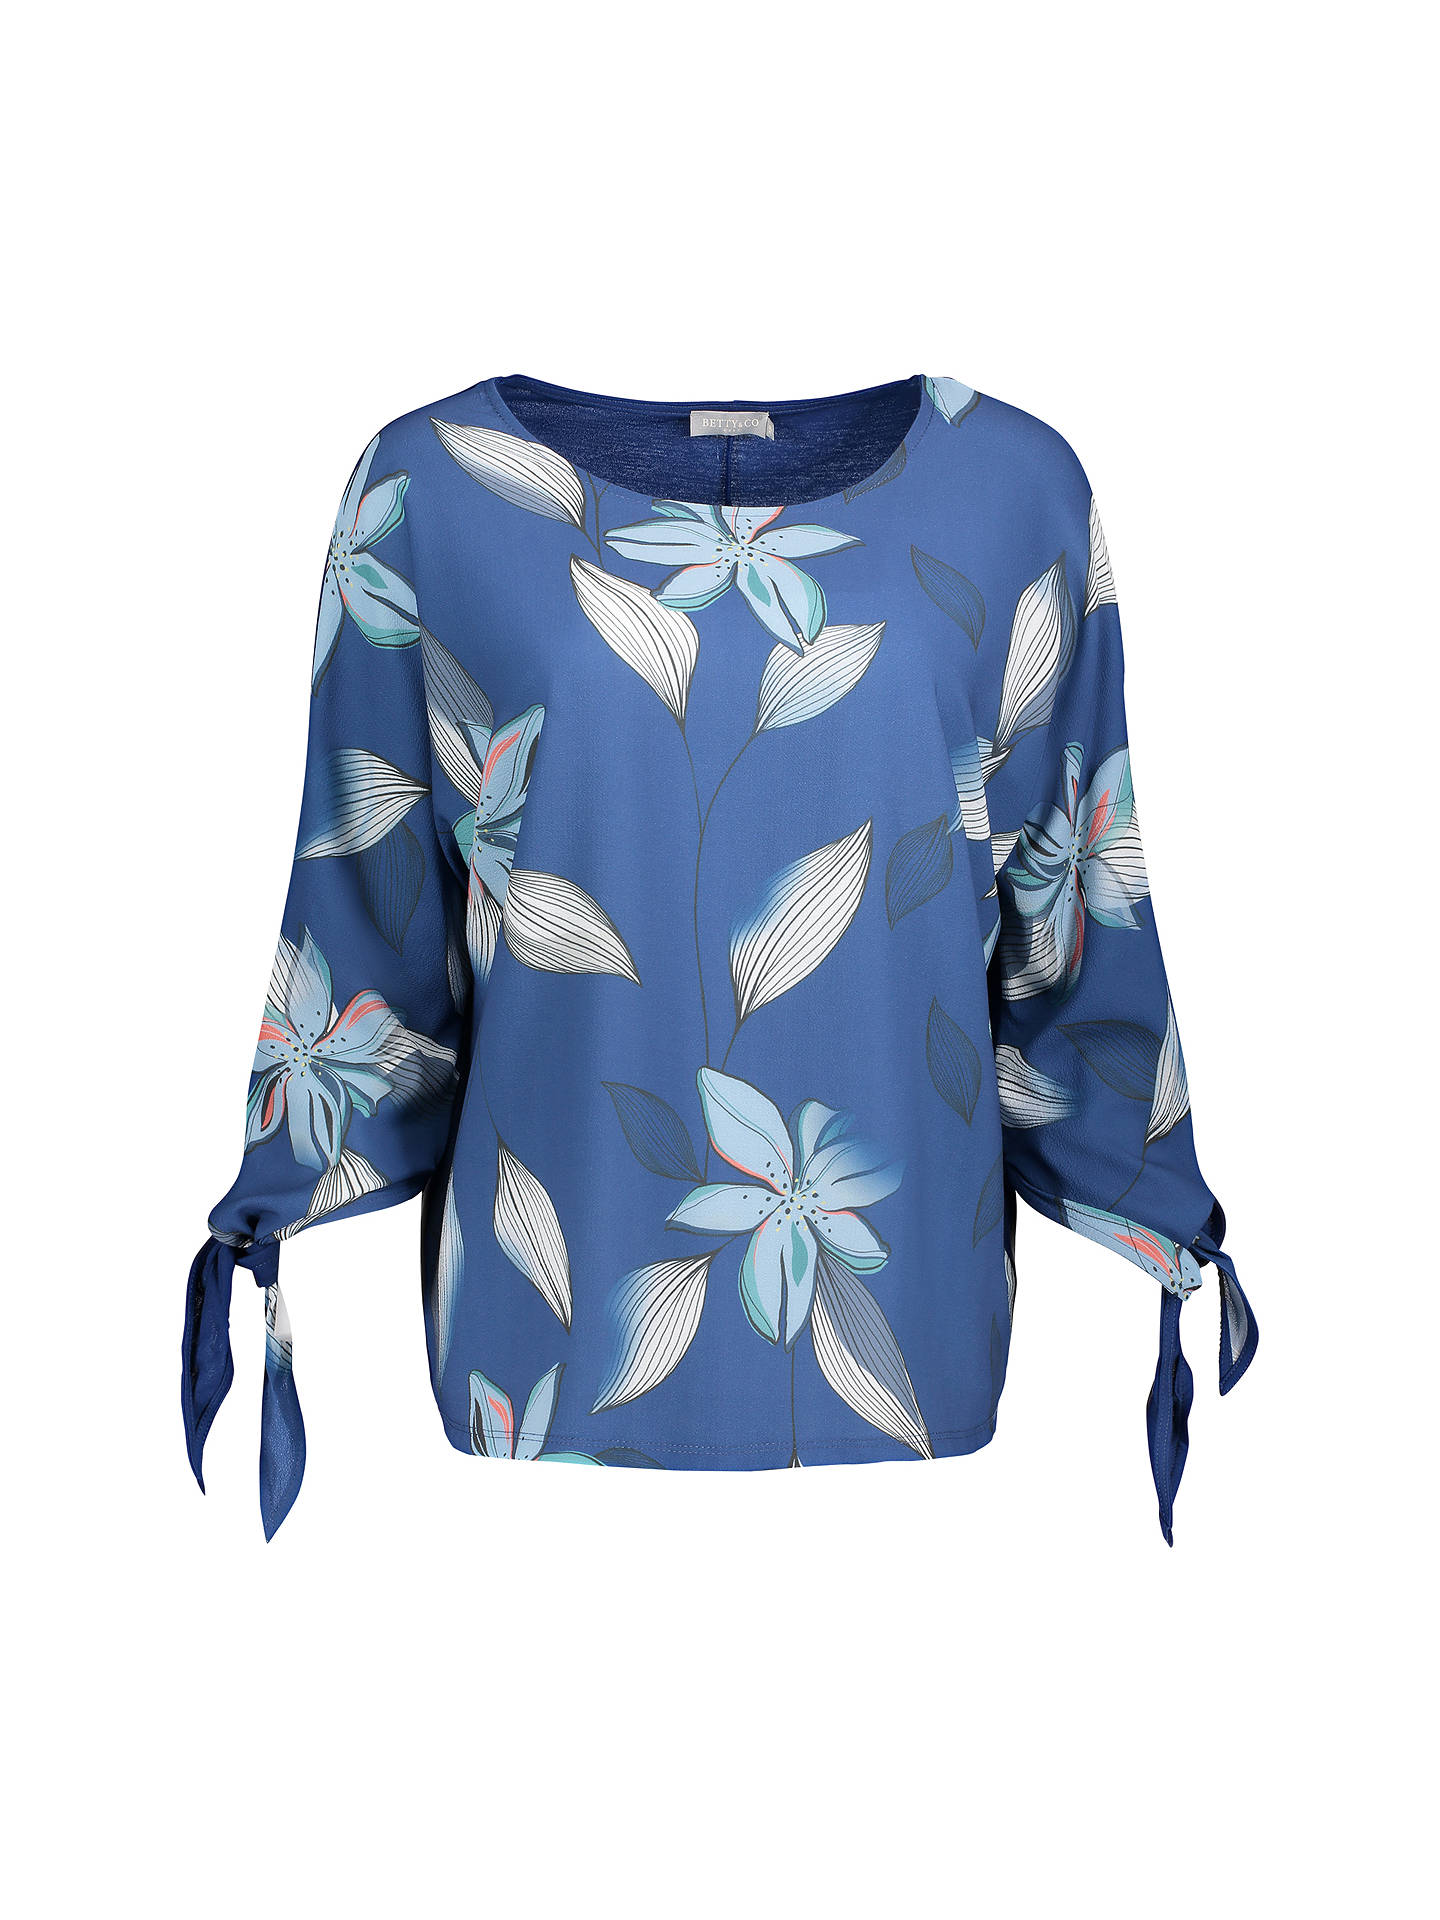 BuyBetty & Co. Floral Print Top, Blue/White, 18 Online at johnlewis.com